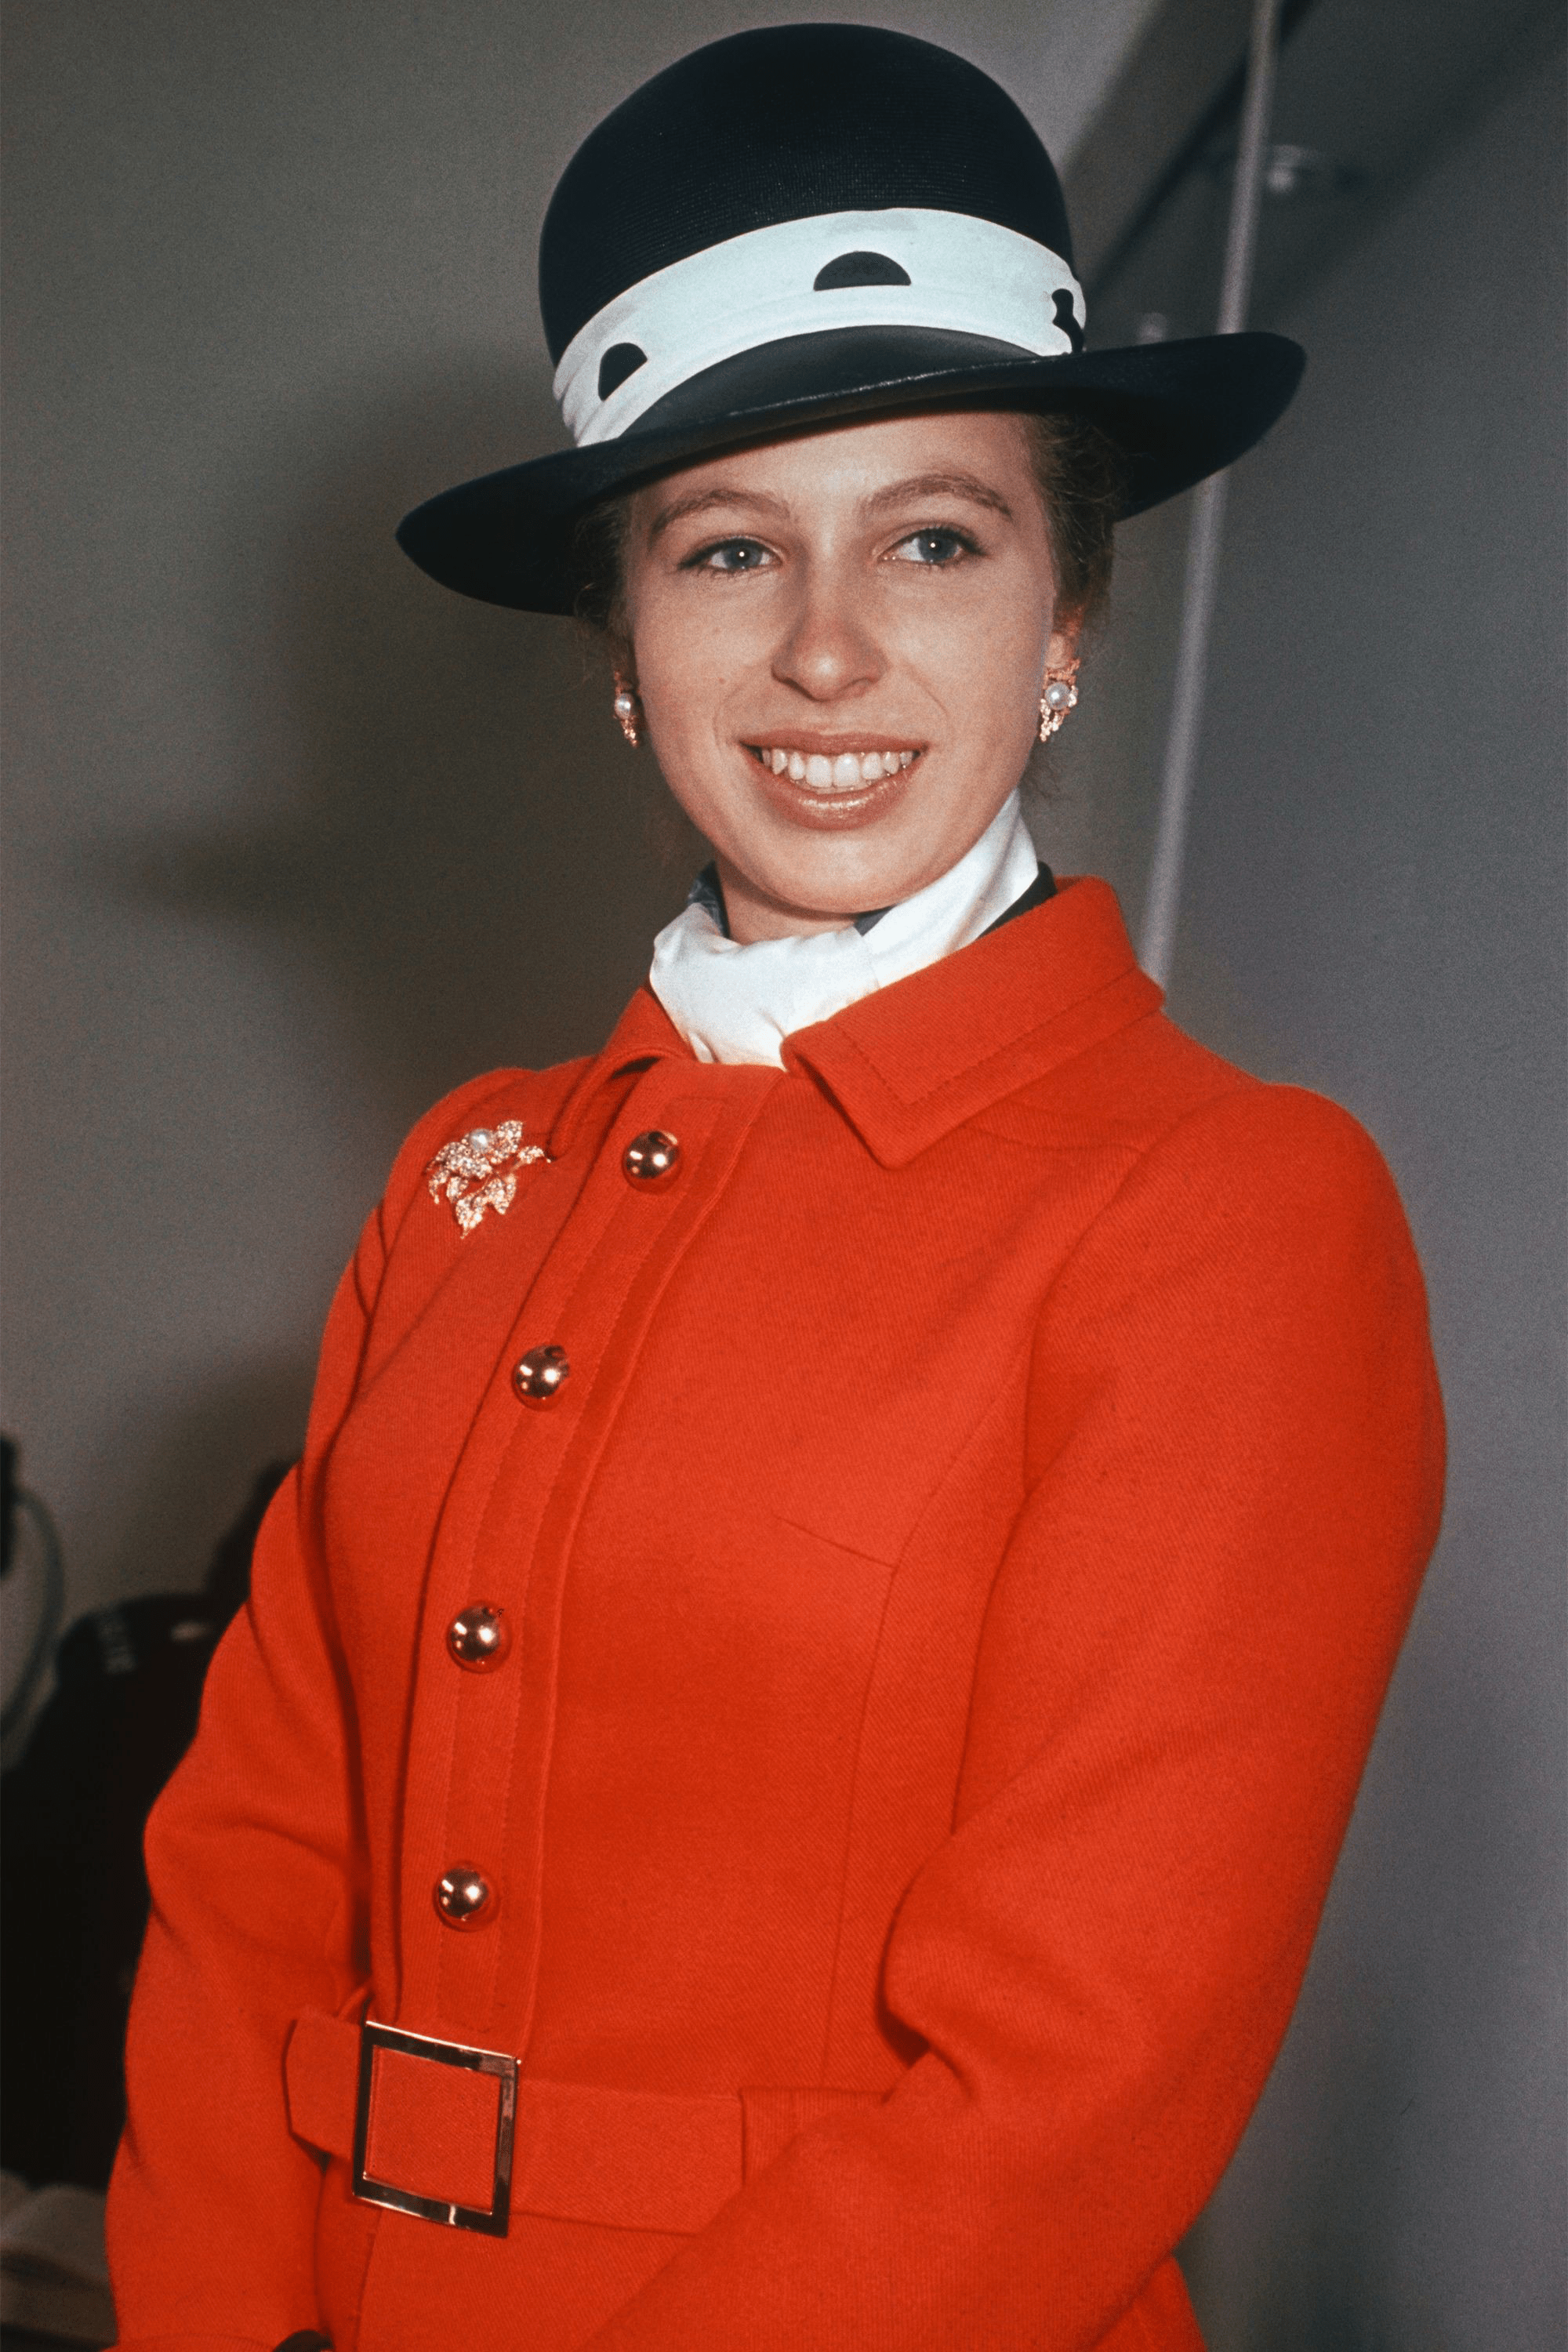 1503216290-hbz-princess-anne-1969-gettyimages-515285122-1502998274